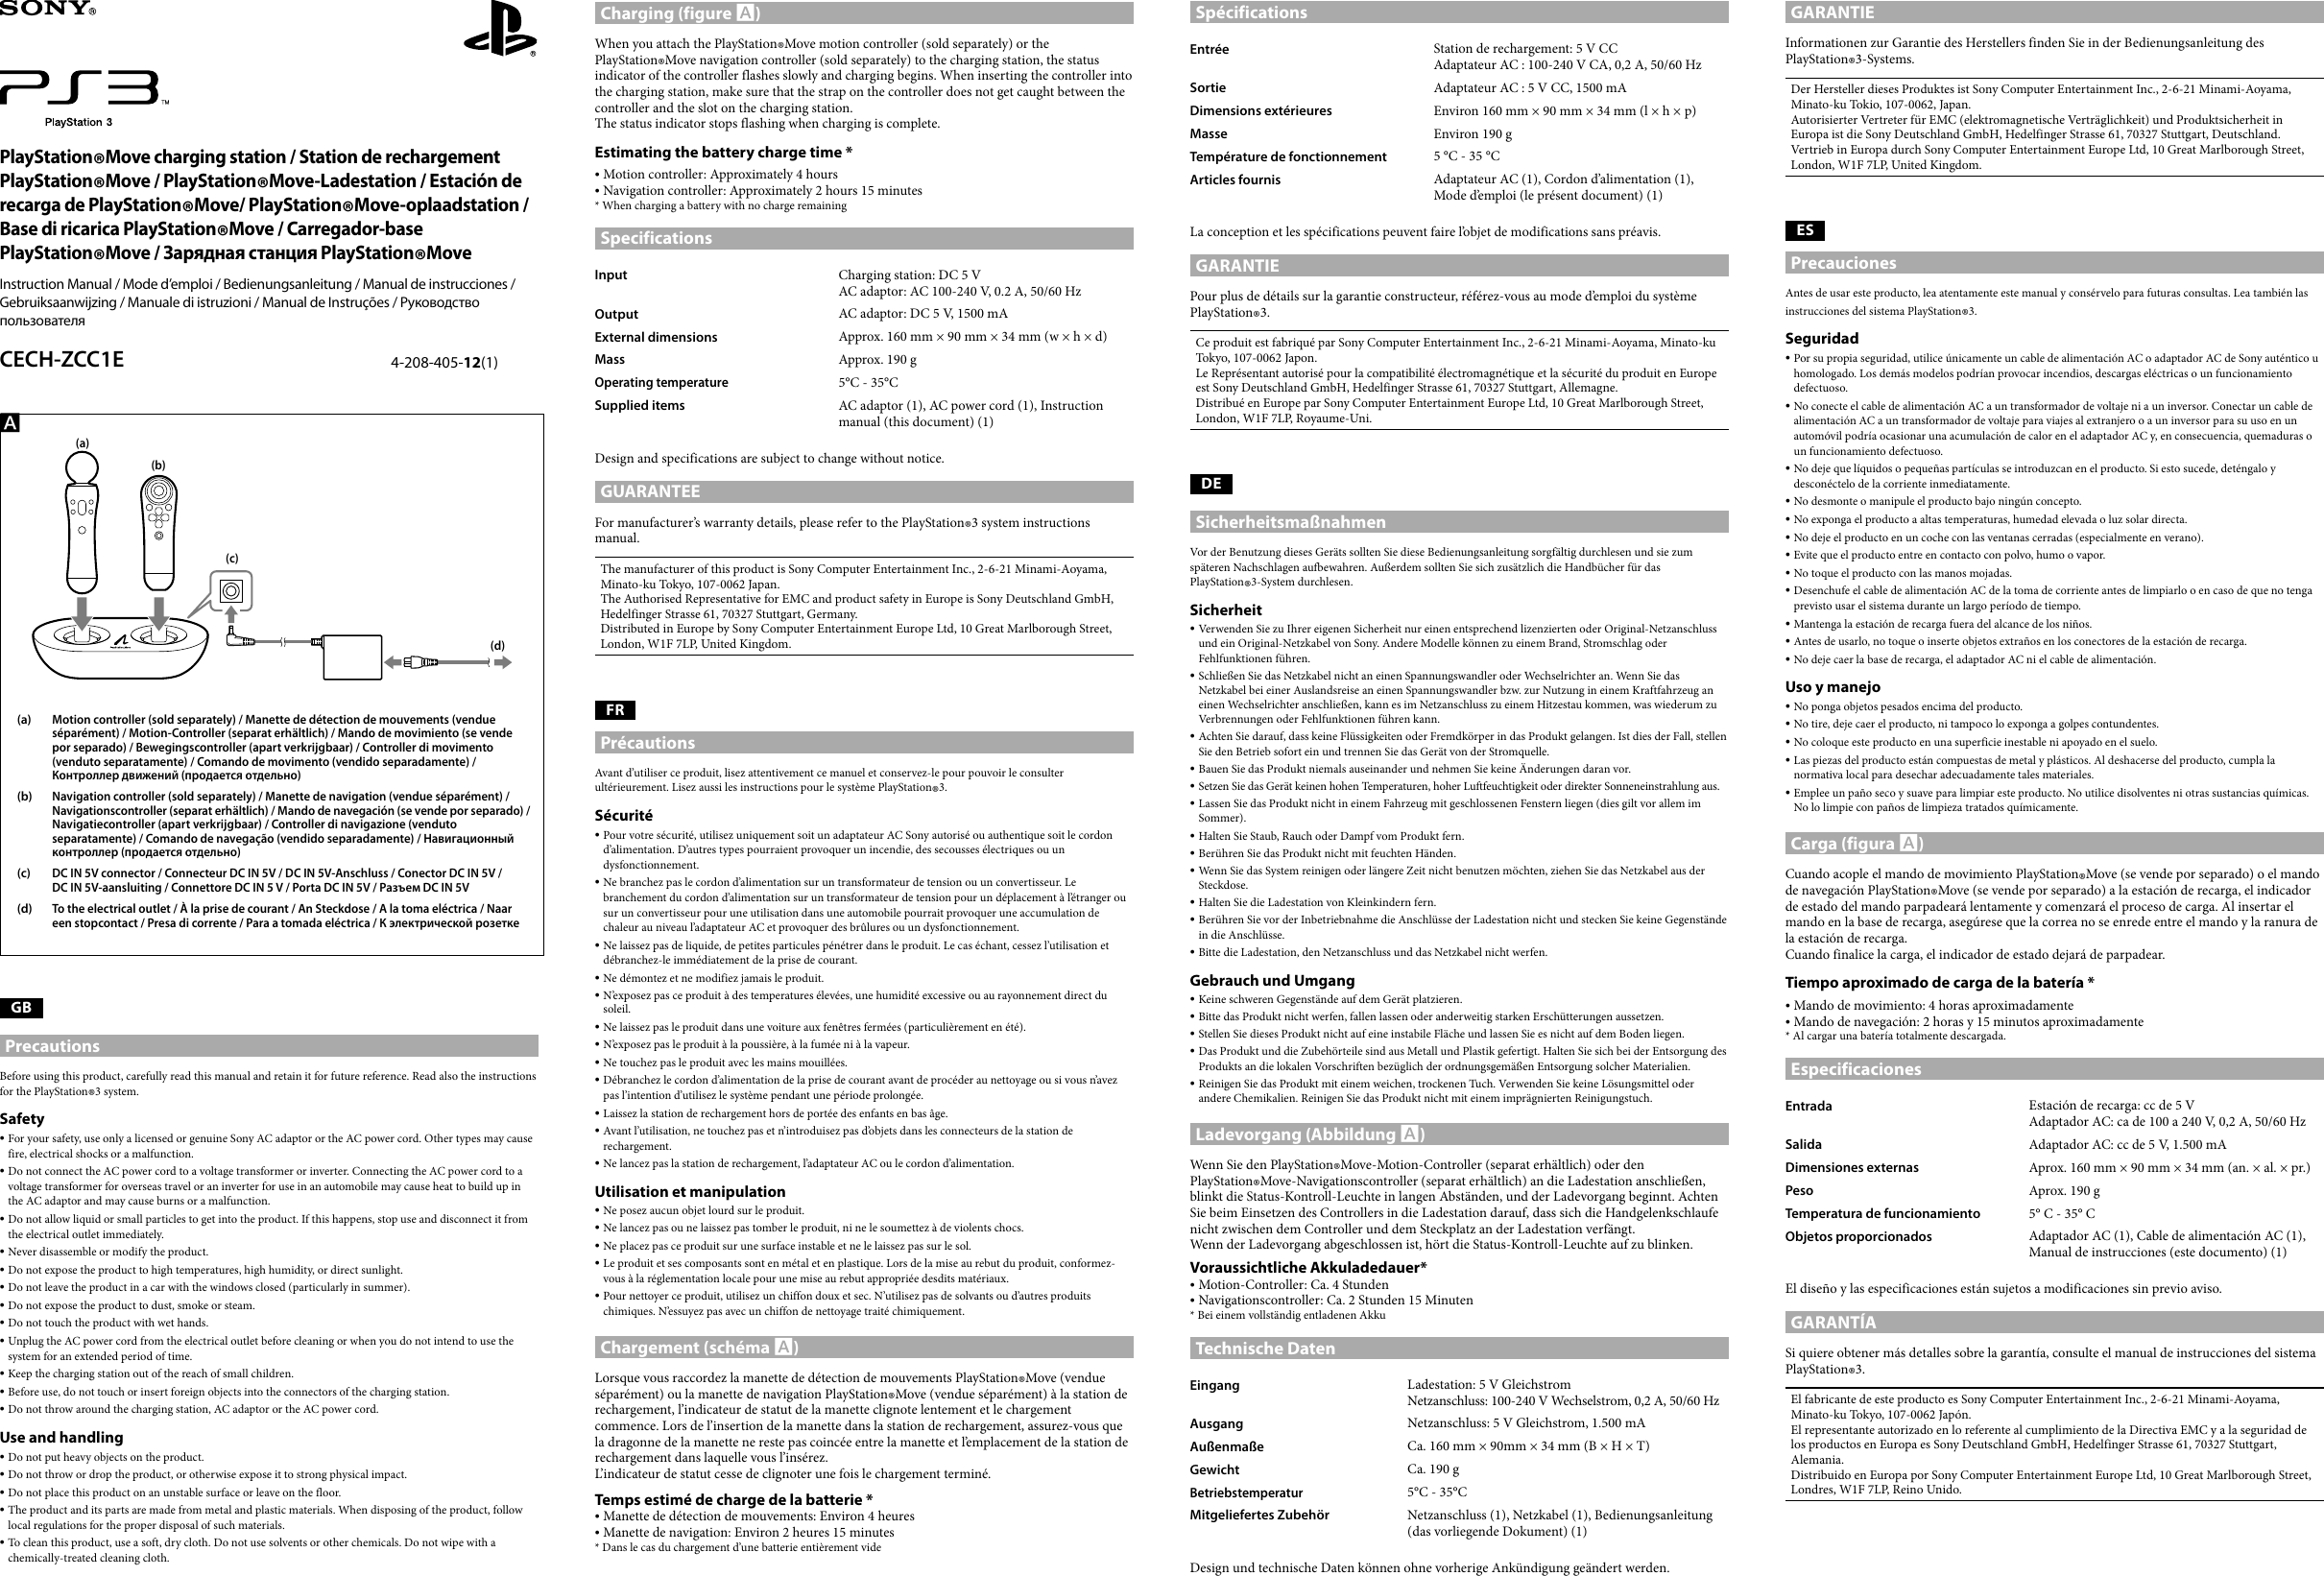 sony ps3 playstation move charging station cech zcc1e user guide rh usermanual wiki sony playstation user manual sony ps3 owners manual